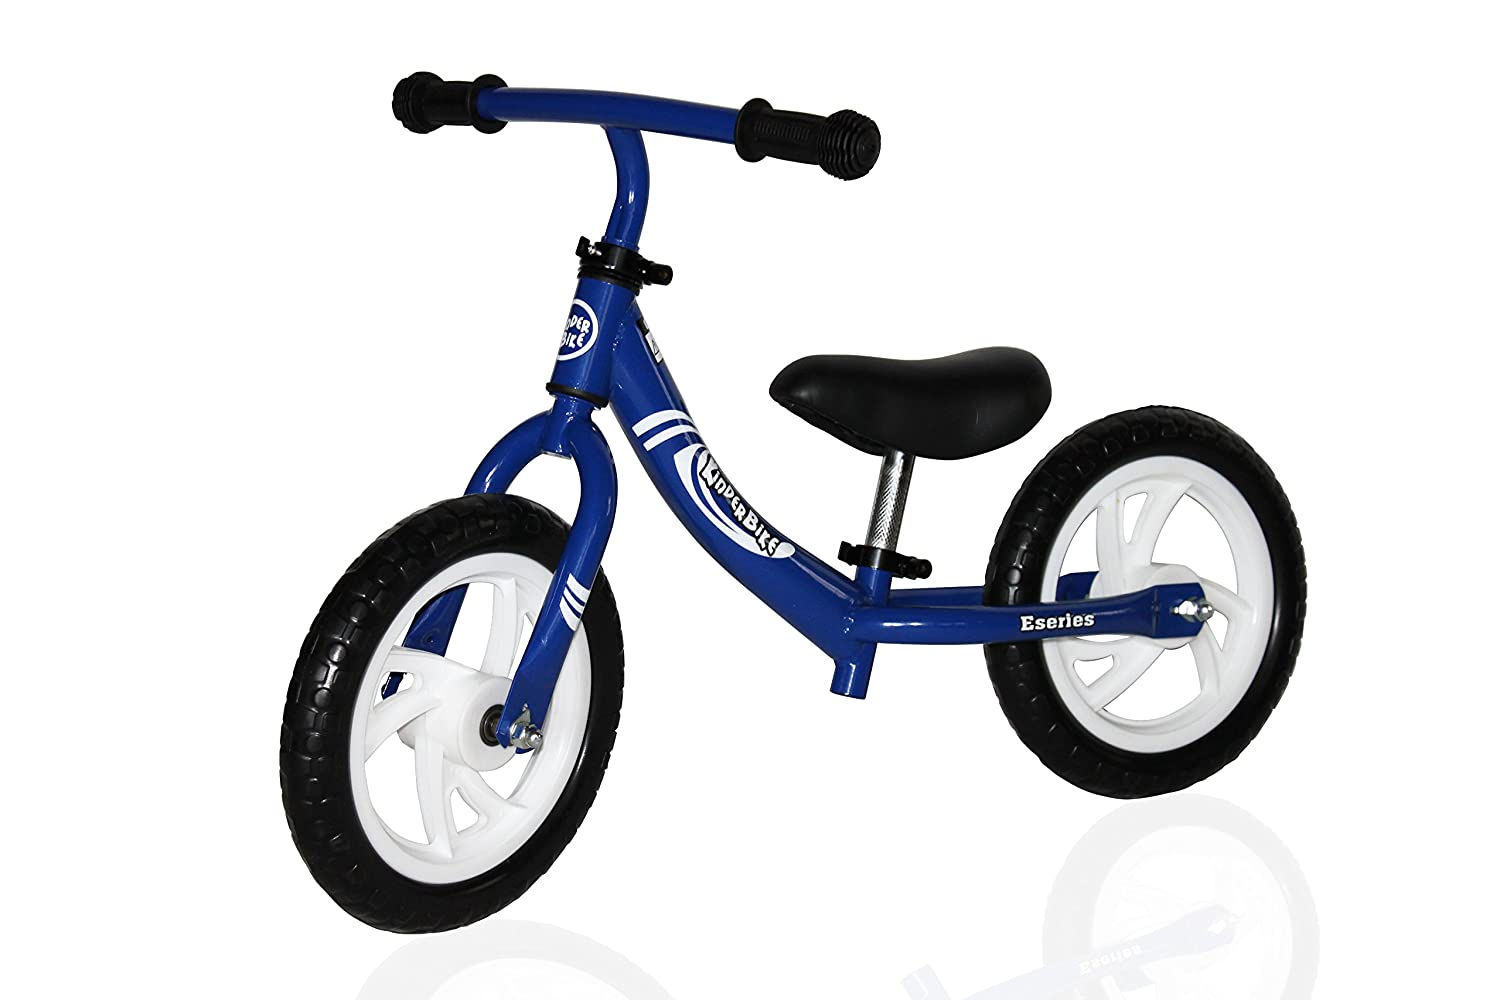 KinderBike E Series 2014 Bike, Blue EV0914B31120